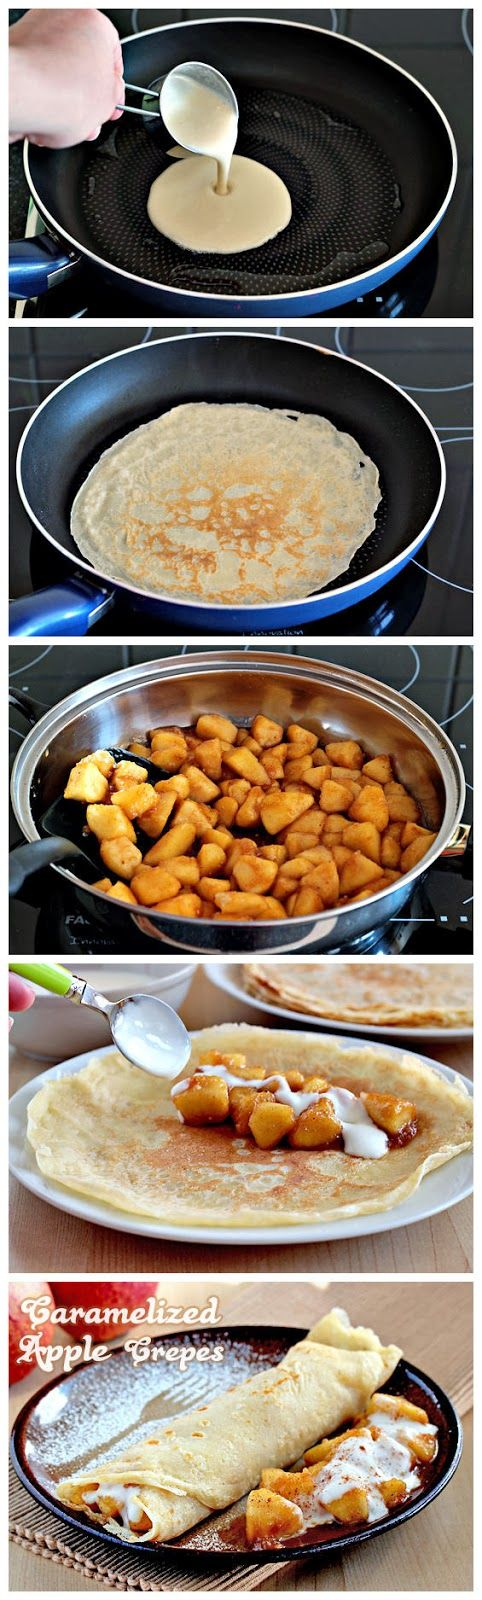 Caramelized Apple Crepes for batter: 1 cup (120 grams) cake flour 1 cup (250 ml) milk 1/2 cup (125 ml) water 1/4 cup (50 grams) granulated white sugar 2 eggs pinch salt vegetable oil (for cooking) for filling: 6 apples, 1 1/2 tbsp(20 ml) lemon juice 1tbsp lemon zest 1/2 tsp ground cinnamon 2 tbsp unsalted butter 6tbsp (70 grams) sugar 1 cup (250 ml) creme fraich (or sour cream) 3tbsp confectioners' sugar